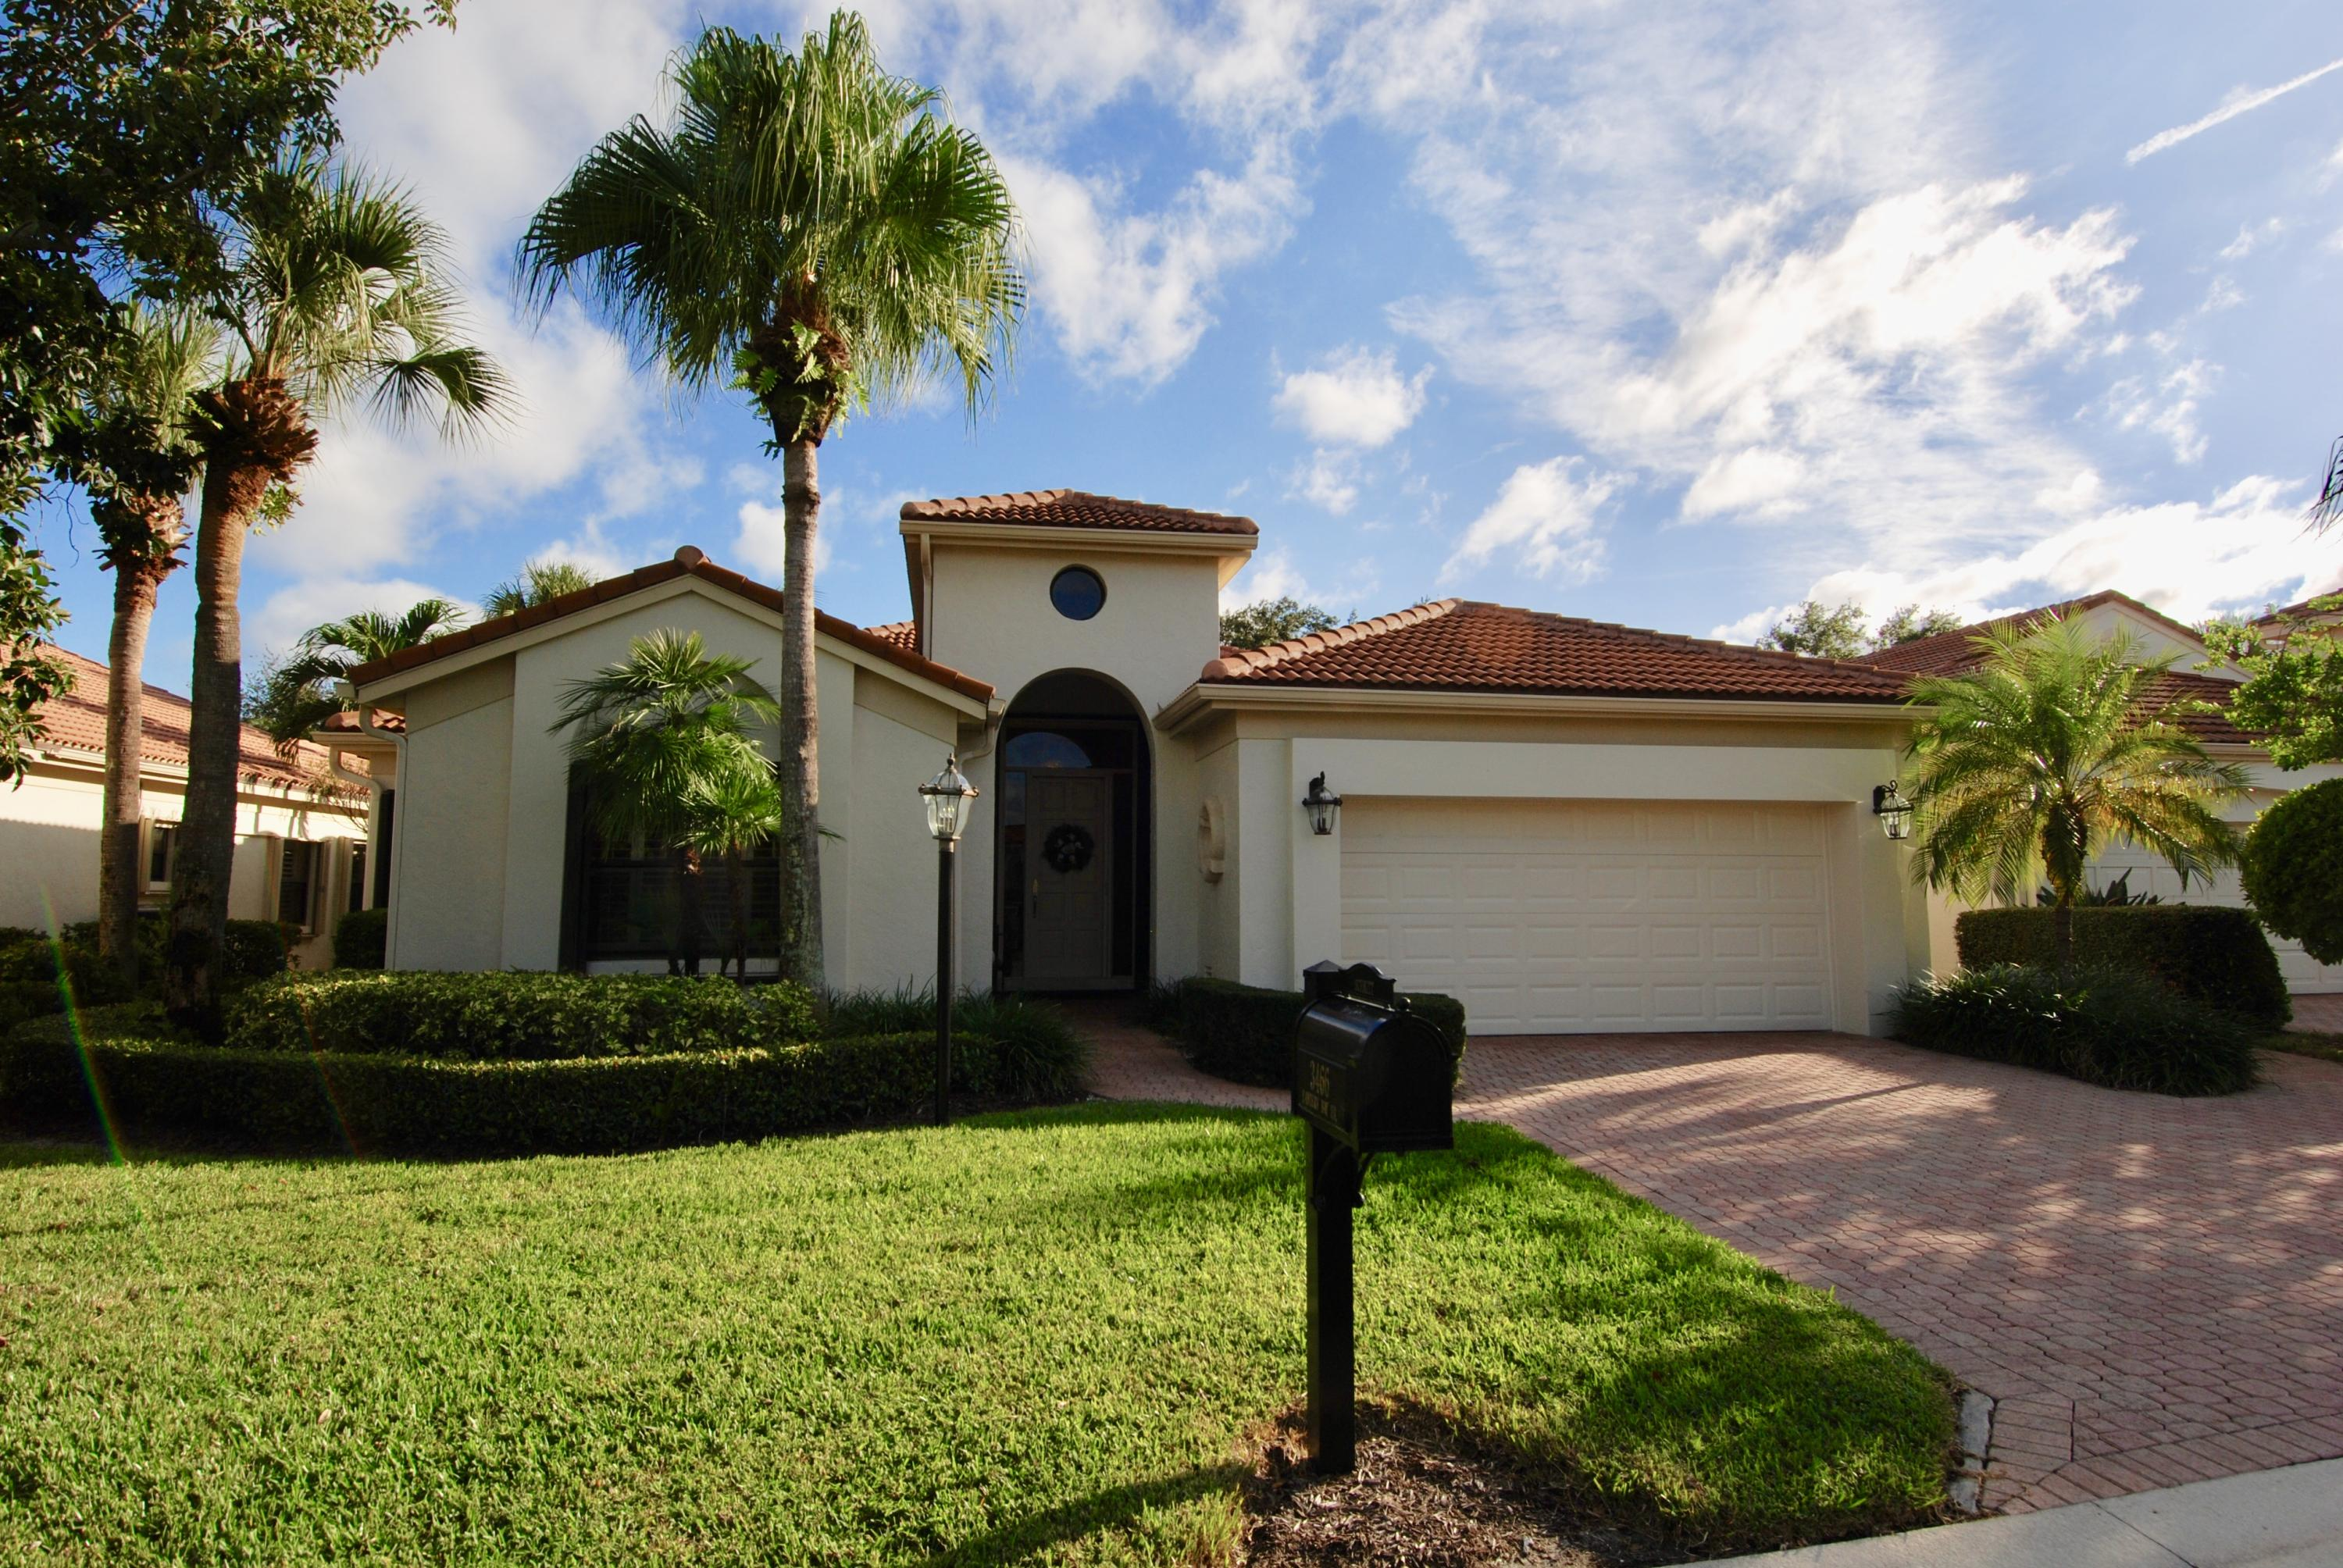 New Home for sale at 3466 Lantern Bay Drive in Jupiter